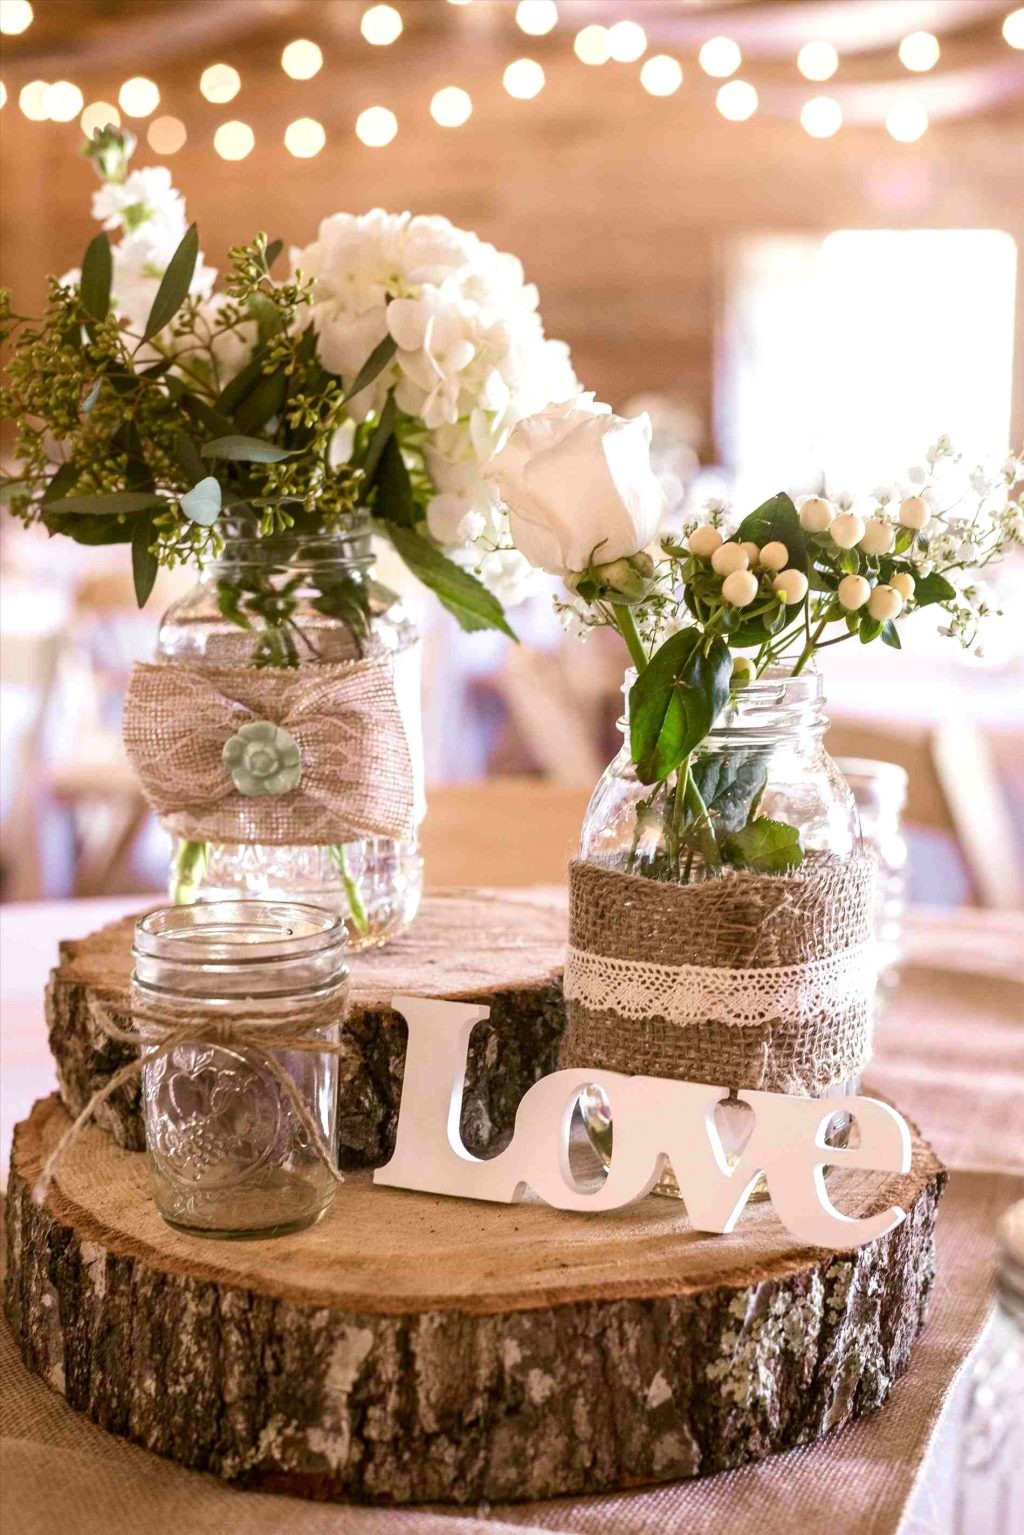 wedding-centerpieces-without-flowers-awesome-romantic-table-decorations-awful-country-chic-decor-rustic.jpg